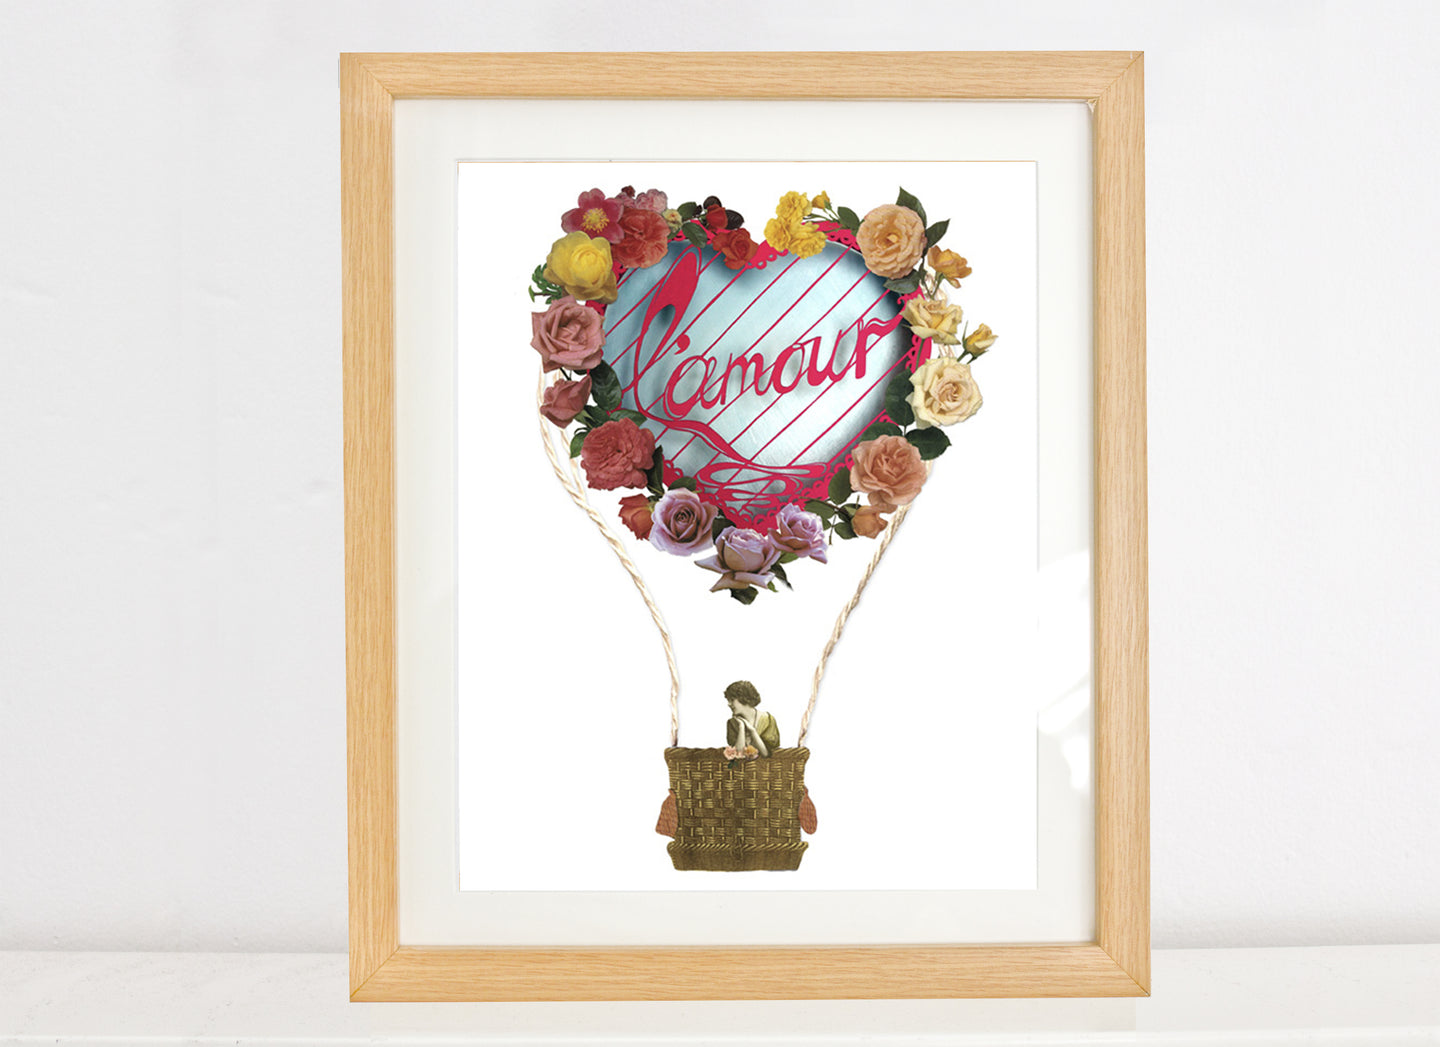 L'amour / LOVE - Limited Edition Print